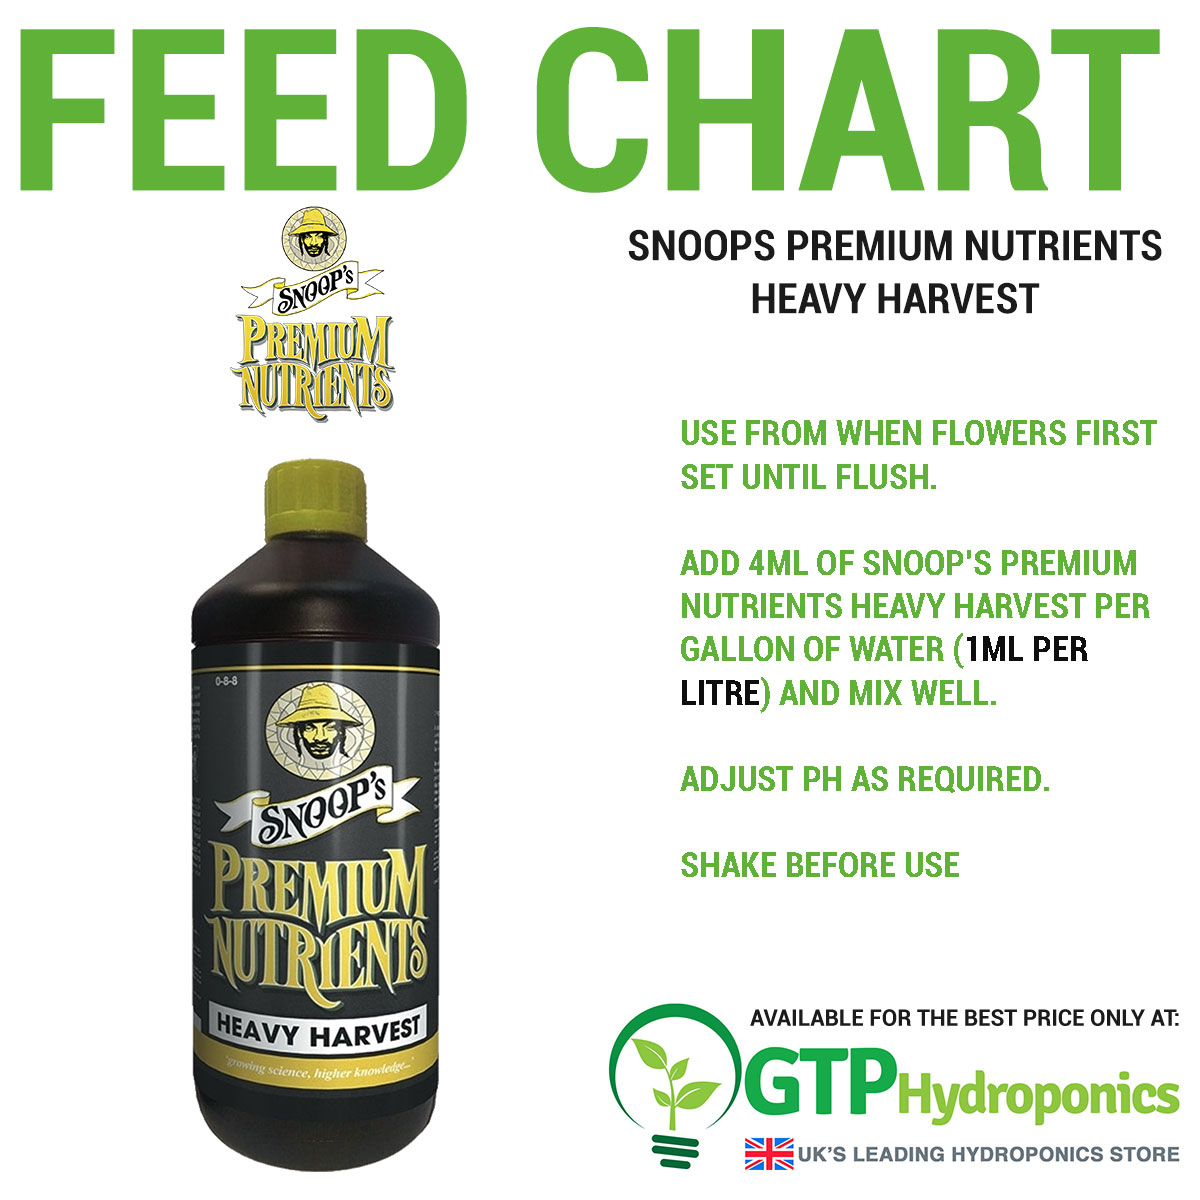 GTP Hydroponics - The Science